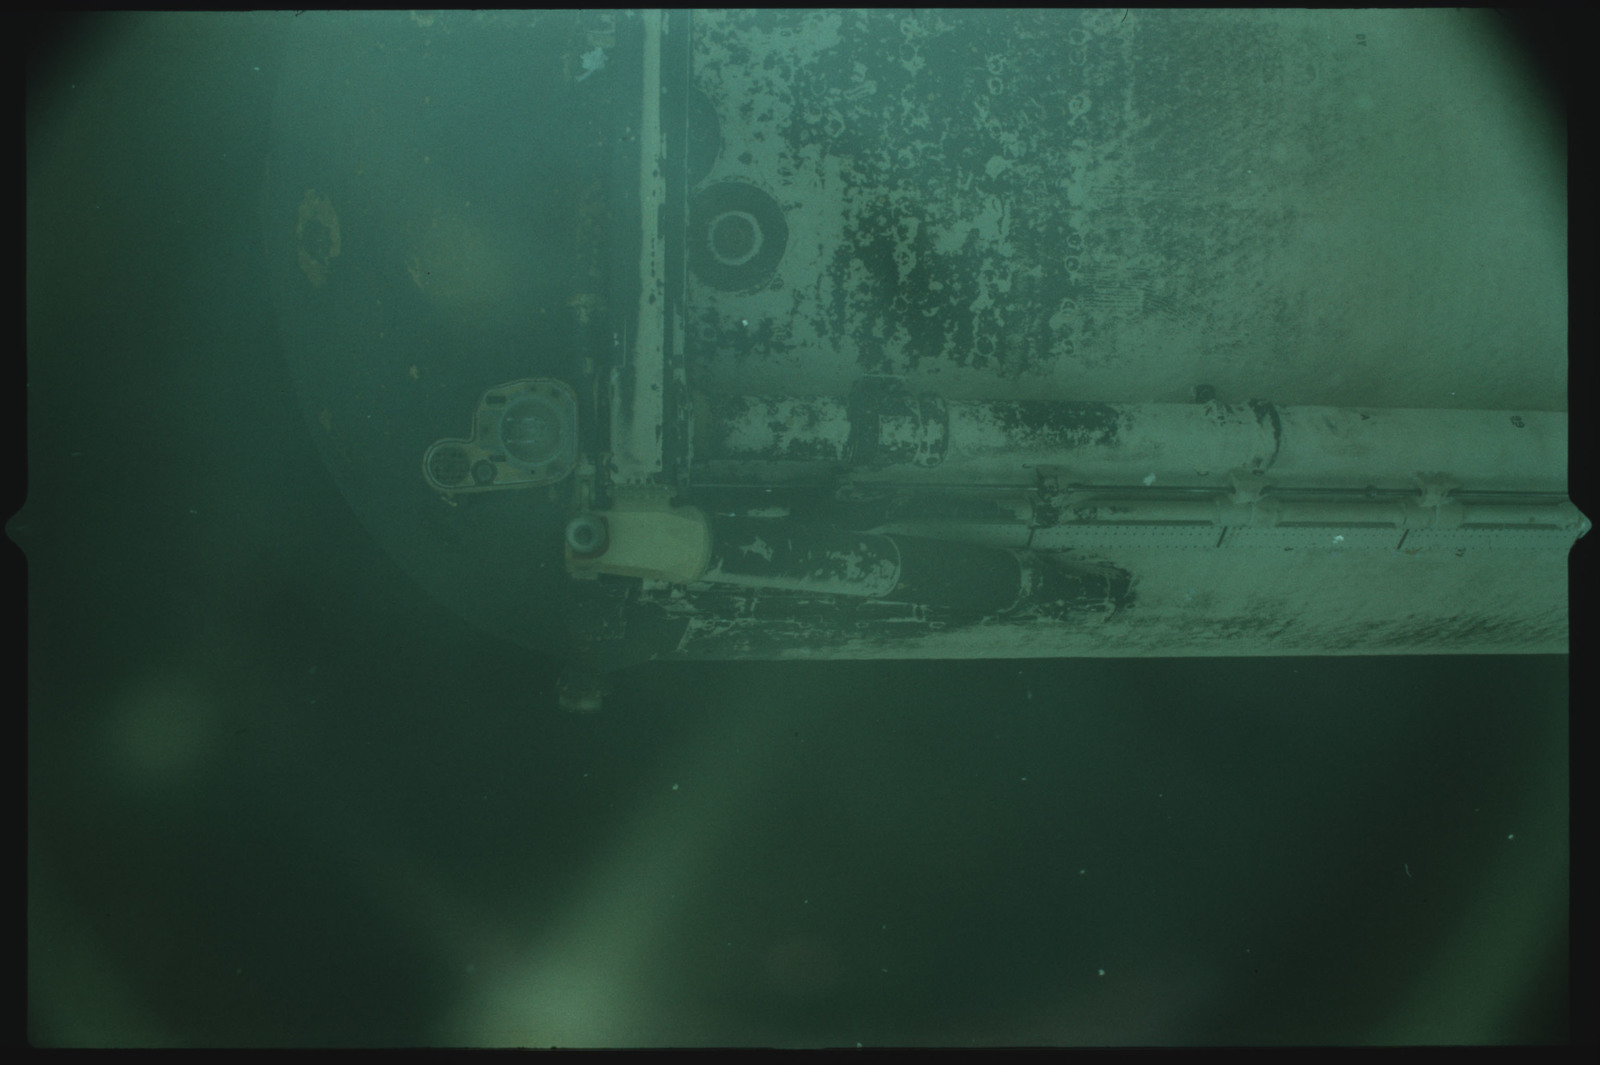 S02-500-920 - STS-002 - View of the External Tank after separation from Columbia during the STS-2 mission